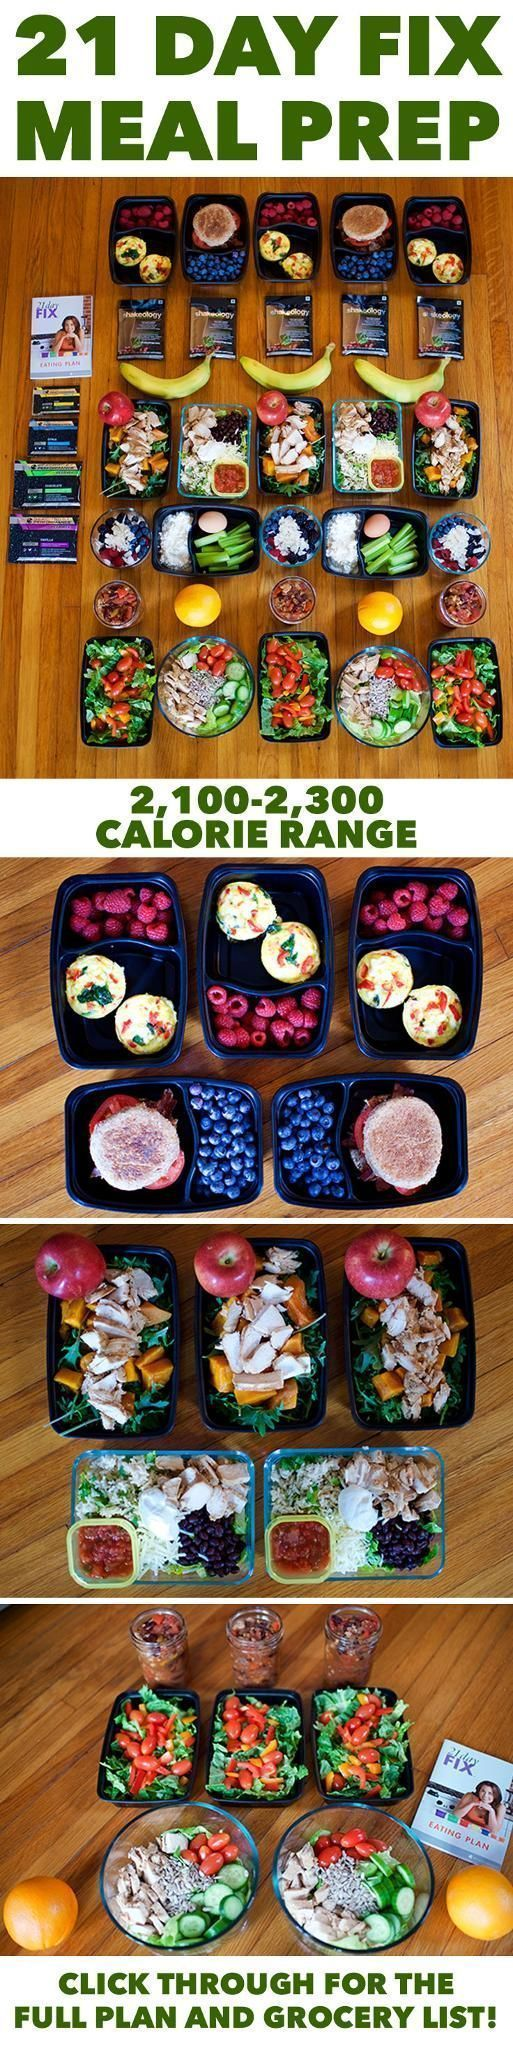 Meal Prep for the 21 Day Fix 2,100-2,300 Calorie Level -- Click through for a complete guide to healthy eating all week long! // meal prep monday // nutrition // clean eating // weight loss // 21 Day Fix approved // beachbody // beachbody blog Mehr zum Abnehmen gibt es auf interessante-dinge.de #300caloriemeals